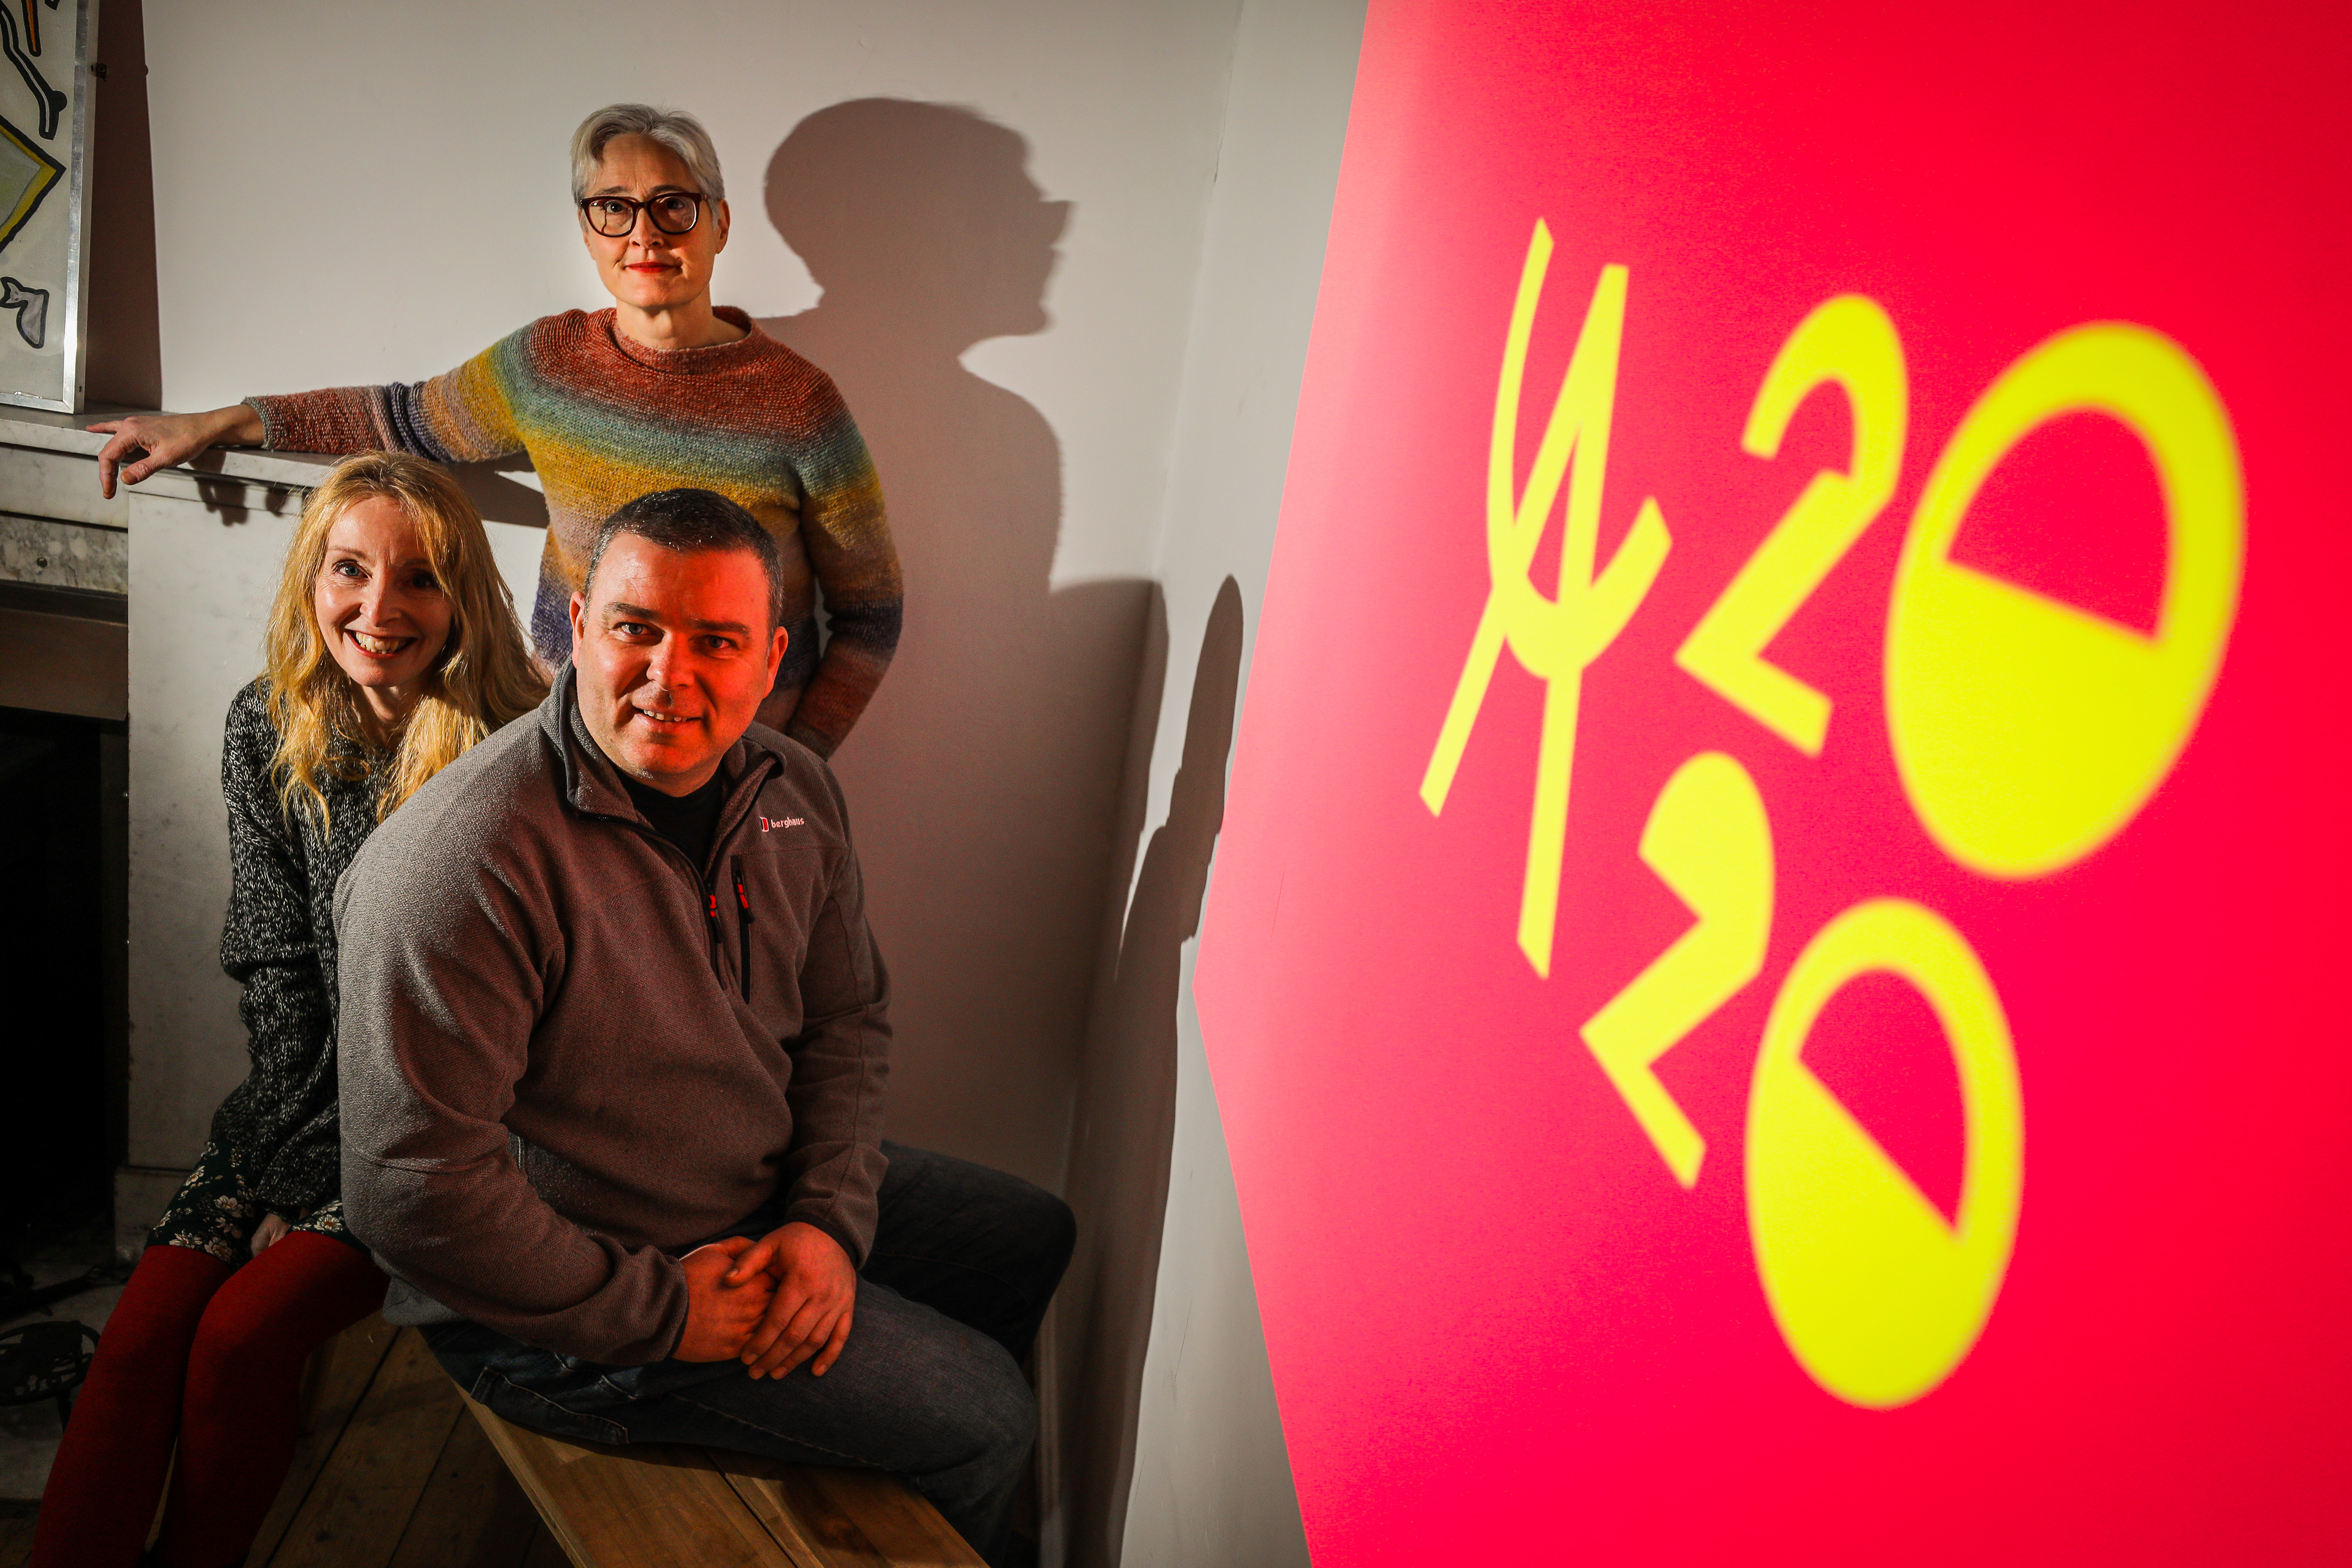 The Arbroath 2020 Committee announce the first three Angus Artists to be awarded grants to make new work that will be presented as part of the 2020 Festival.